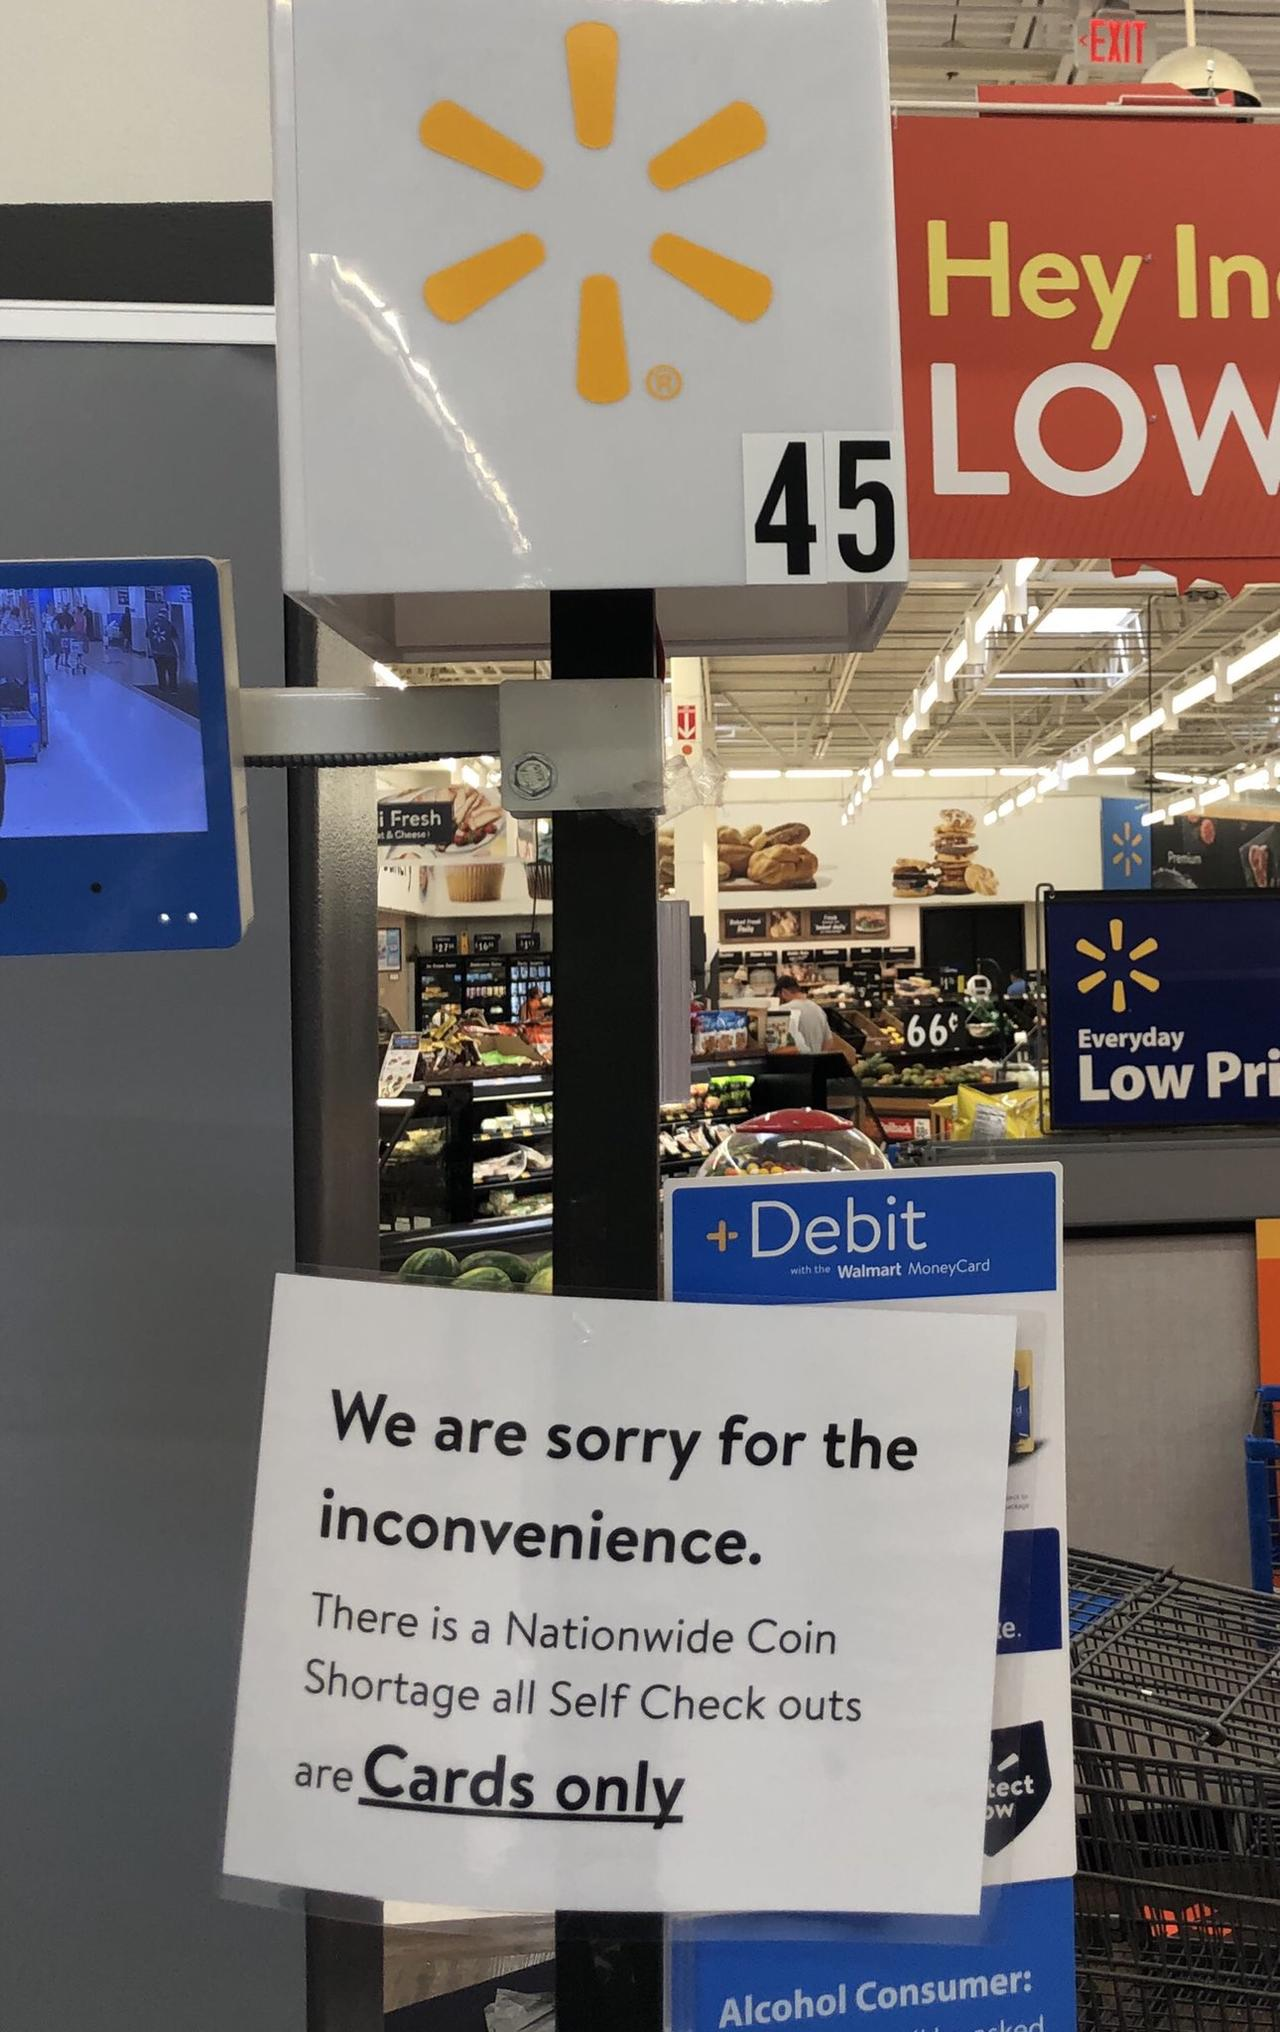 Coin Shortage Strikes Walmart, Customers Required To Pay With Card At Self-Checkout Walmart%20coin%20shortage